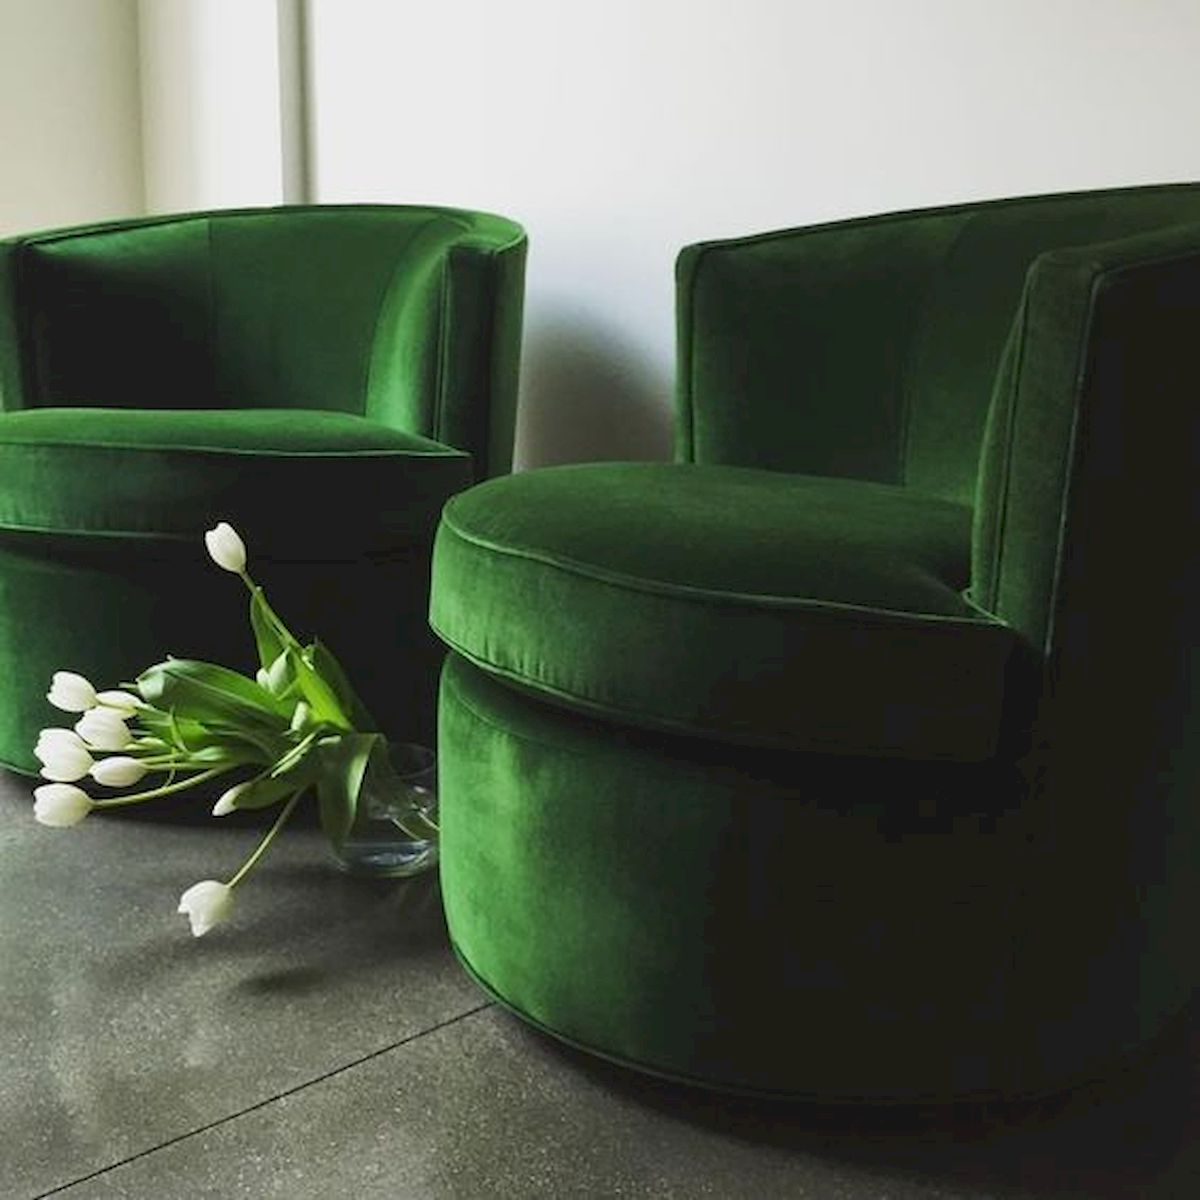 50 DIY Relaxing Chairs Design Ideas That Will Make Your Home Look Great (14)